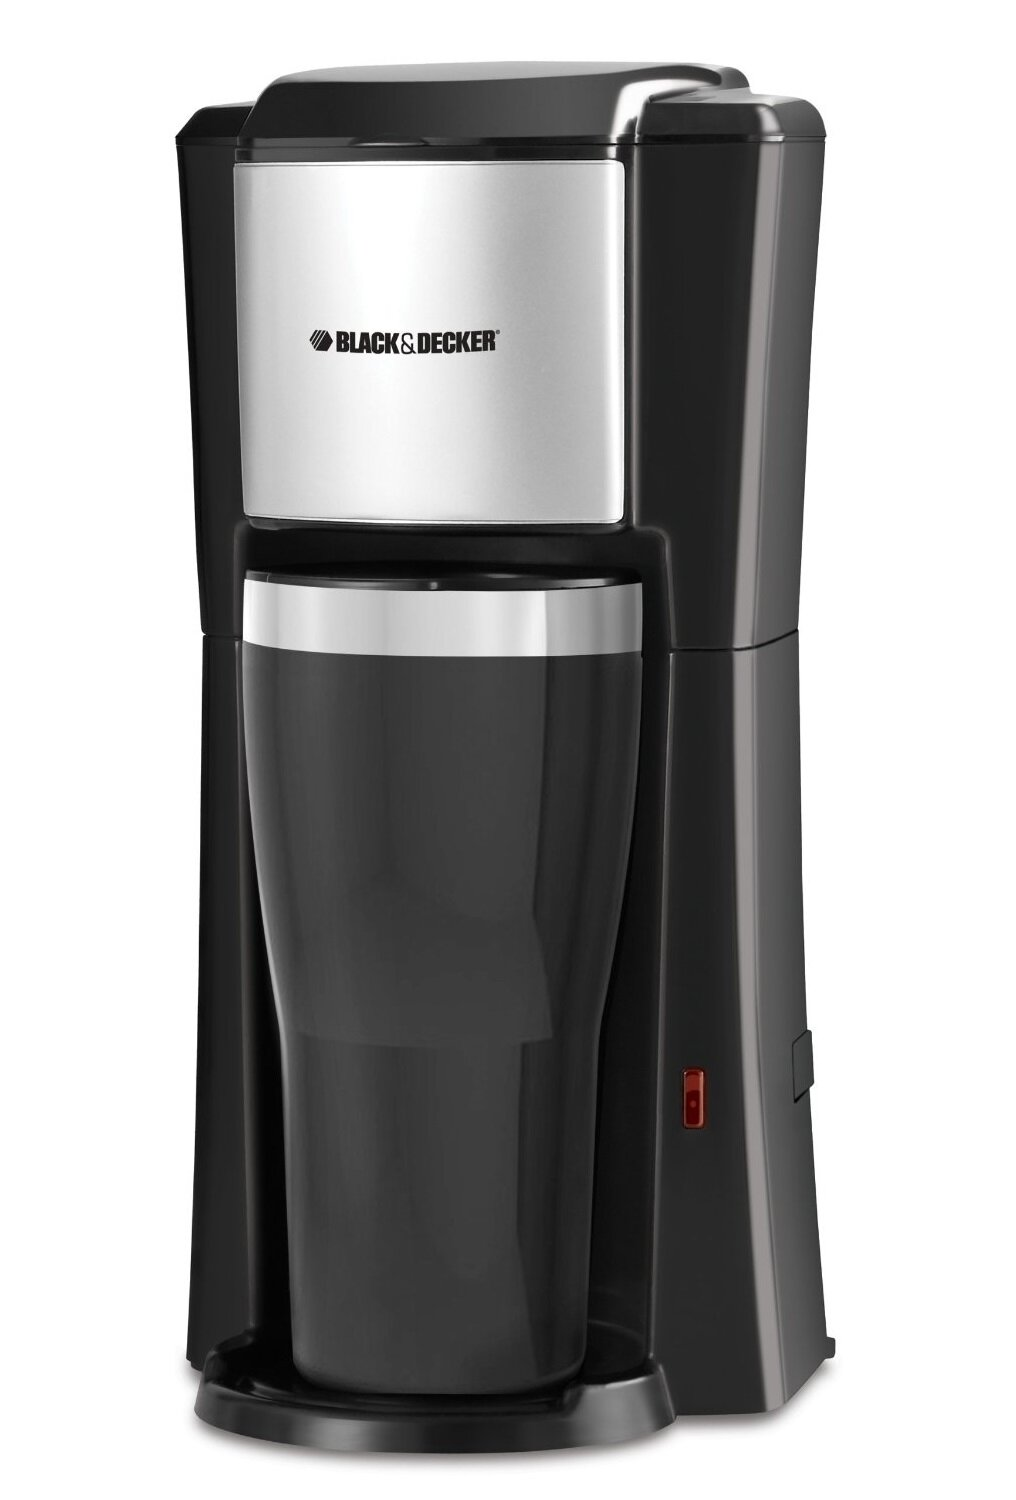 Black Decker Single Serve Coffee Maker Reviews